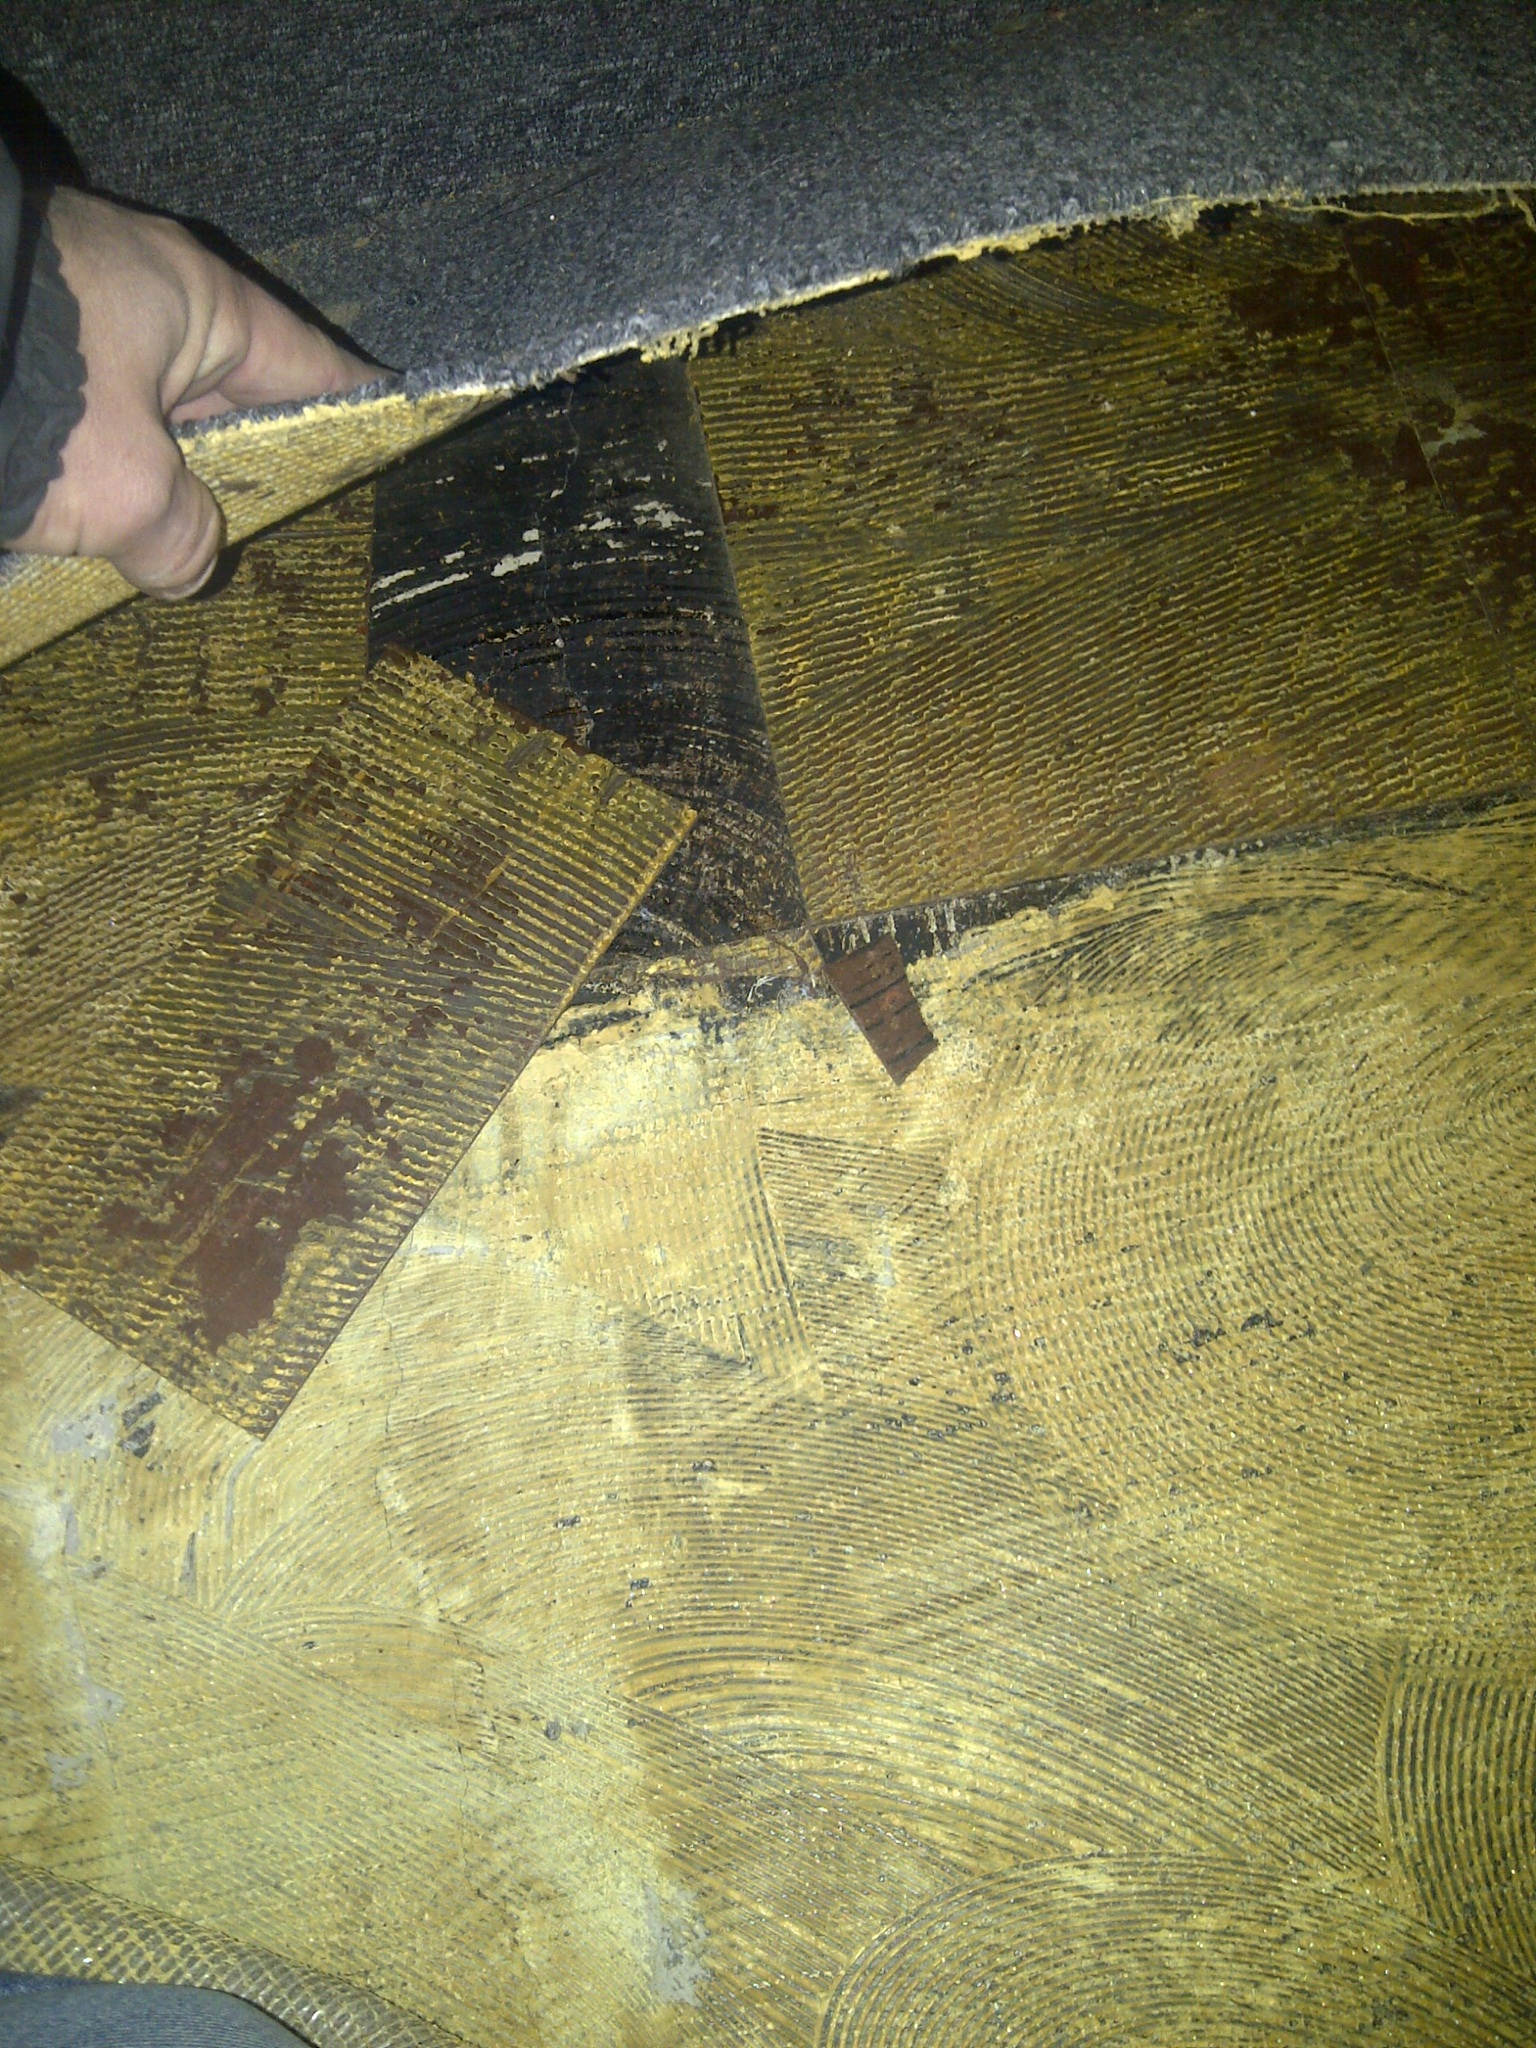 Forum on this topic: How to Identify Black Mold, how-to-identify-black-mold/